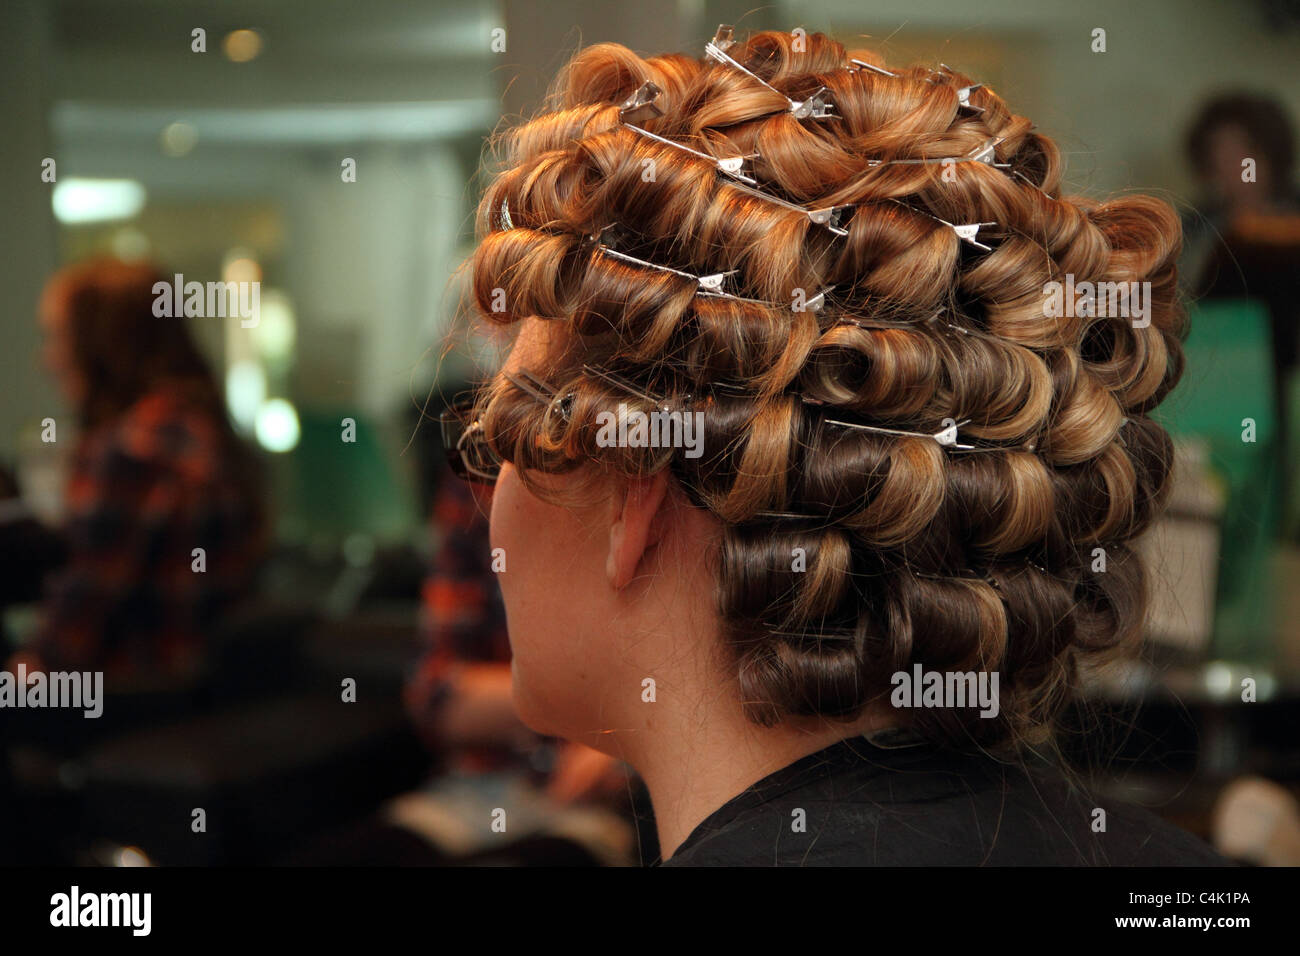 Hair in curlers at the hairdresser. A bride preparing for her big day. Beauty salon. - Stock Image